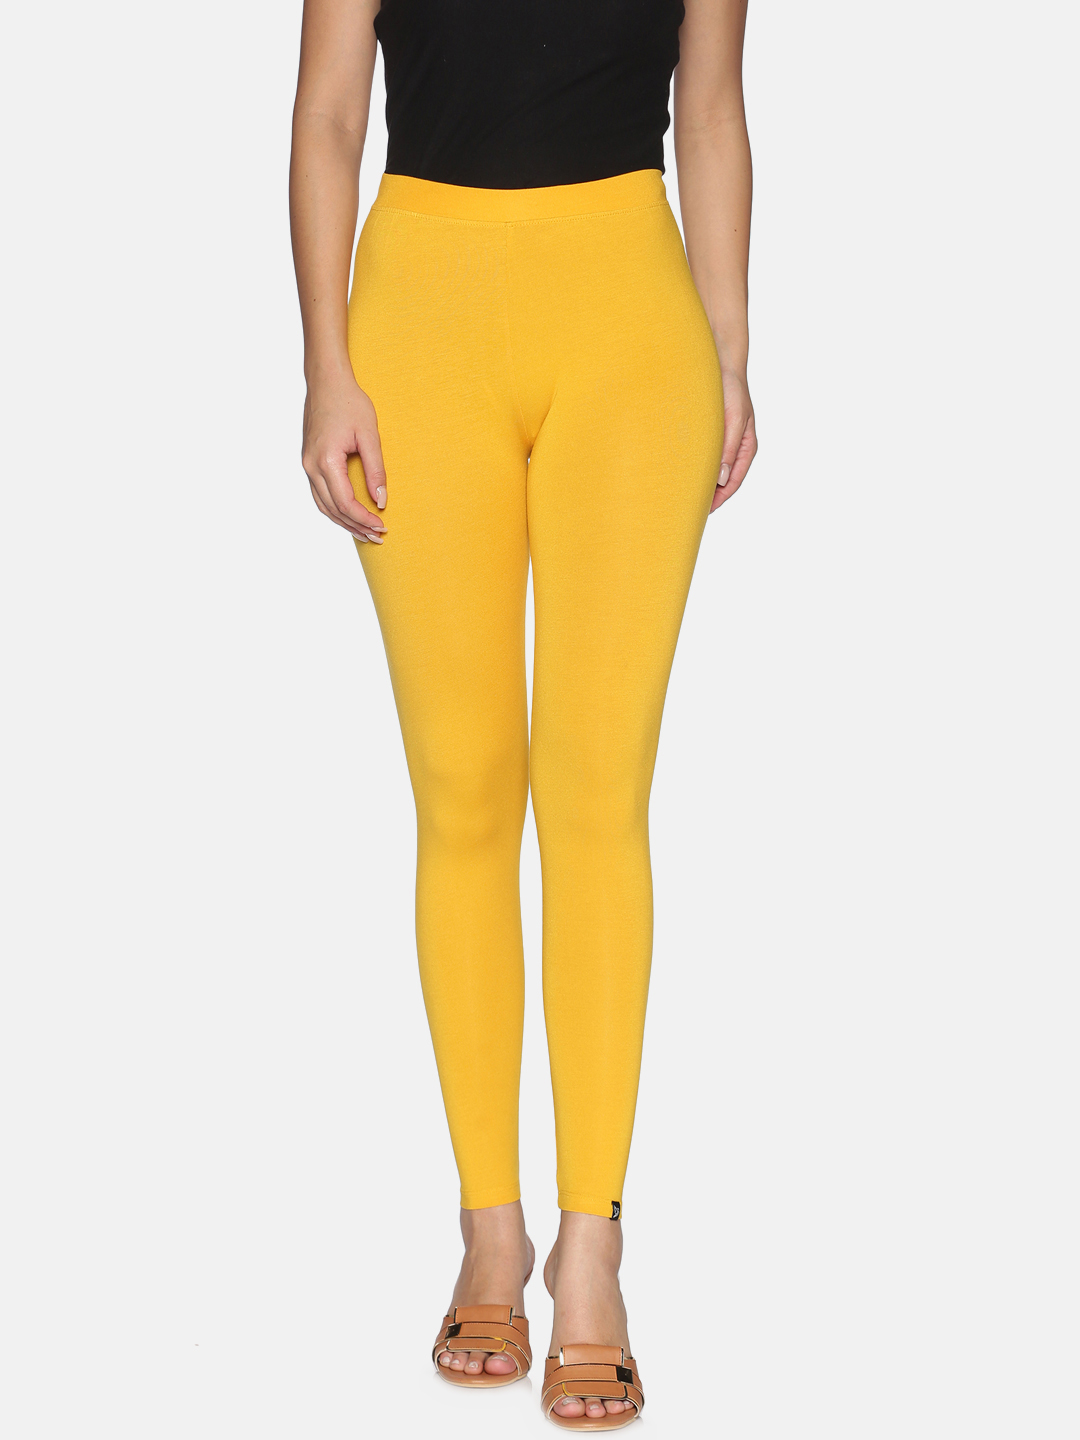 Twin Birds   Twinbirds Candle Light women Ankle Legging - Radiant Series